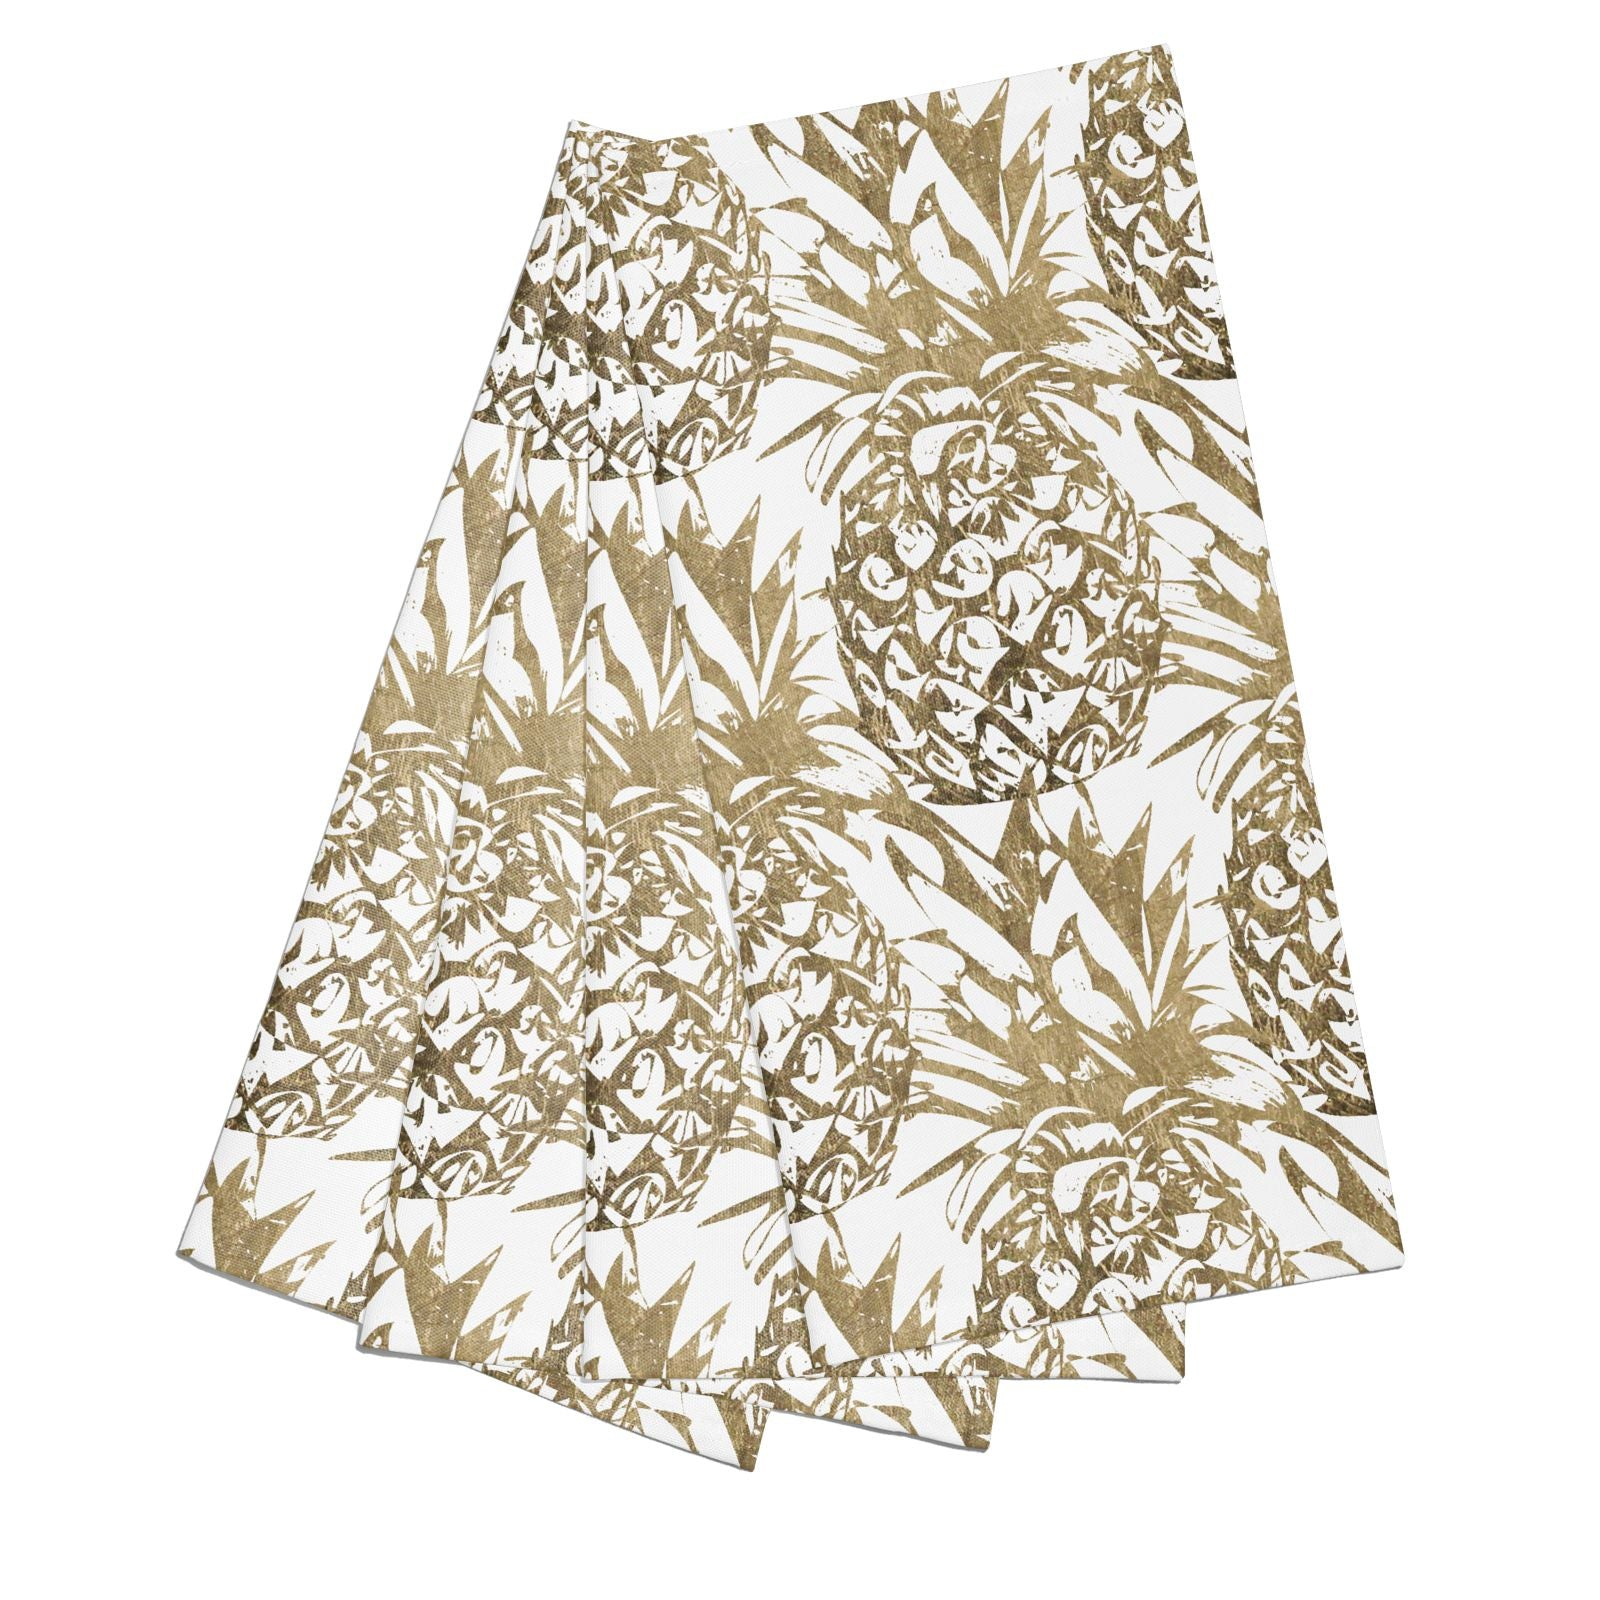 Gold Pineapple Fruit Cotton Napkins Set of 4